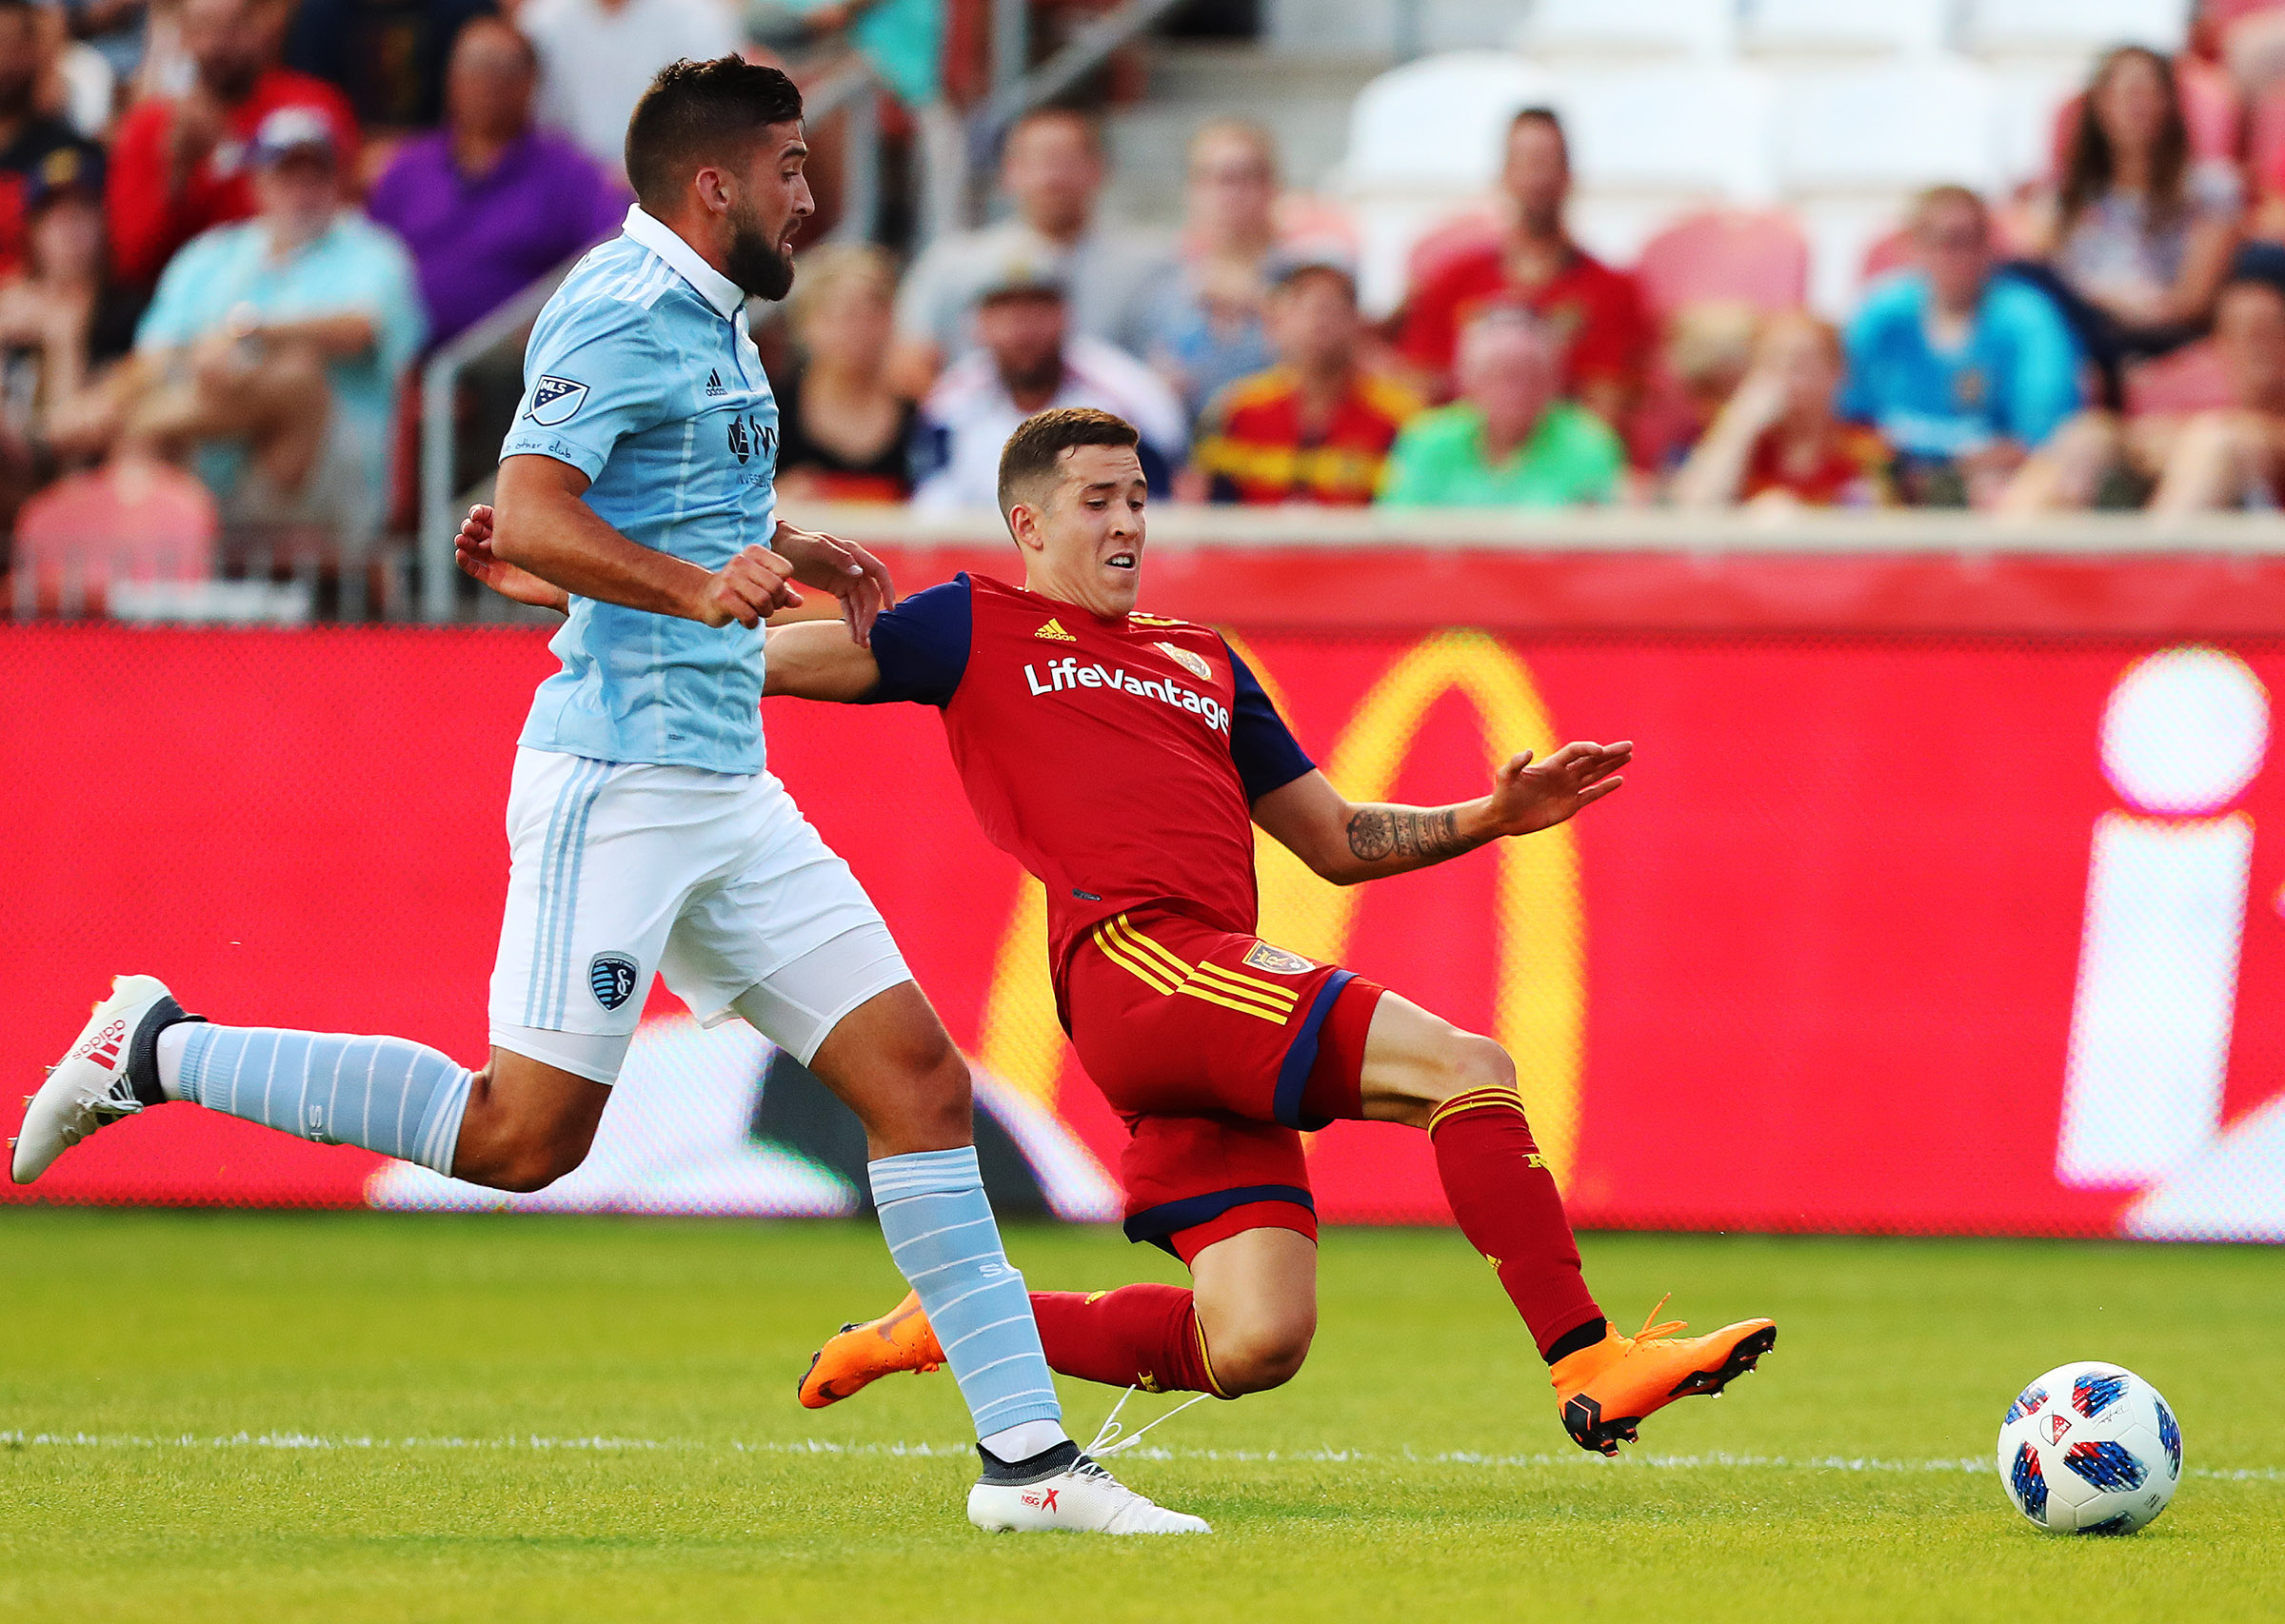 Sporting KC's Emiliano Amor and Real Salt Lake's Aaron Herrera chase down the ball as they play in Open Cup fourth-round action at Rio Tinto Stadium in Sandy on Wednesday, June 6, 2018.